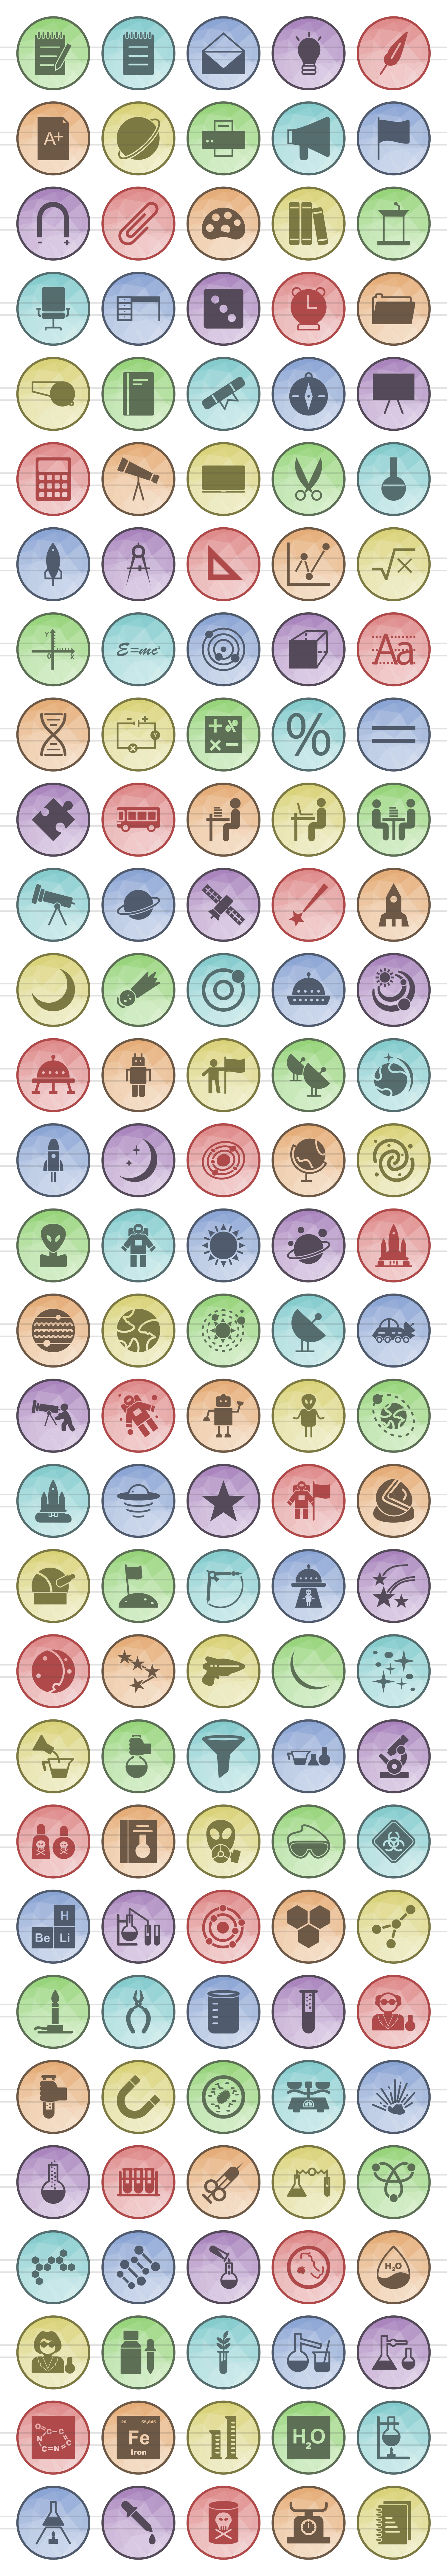 150 Science Filled Low Poly Icons example image 2